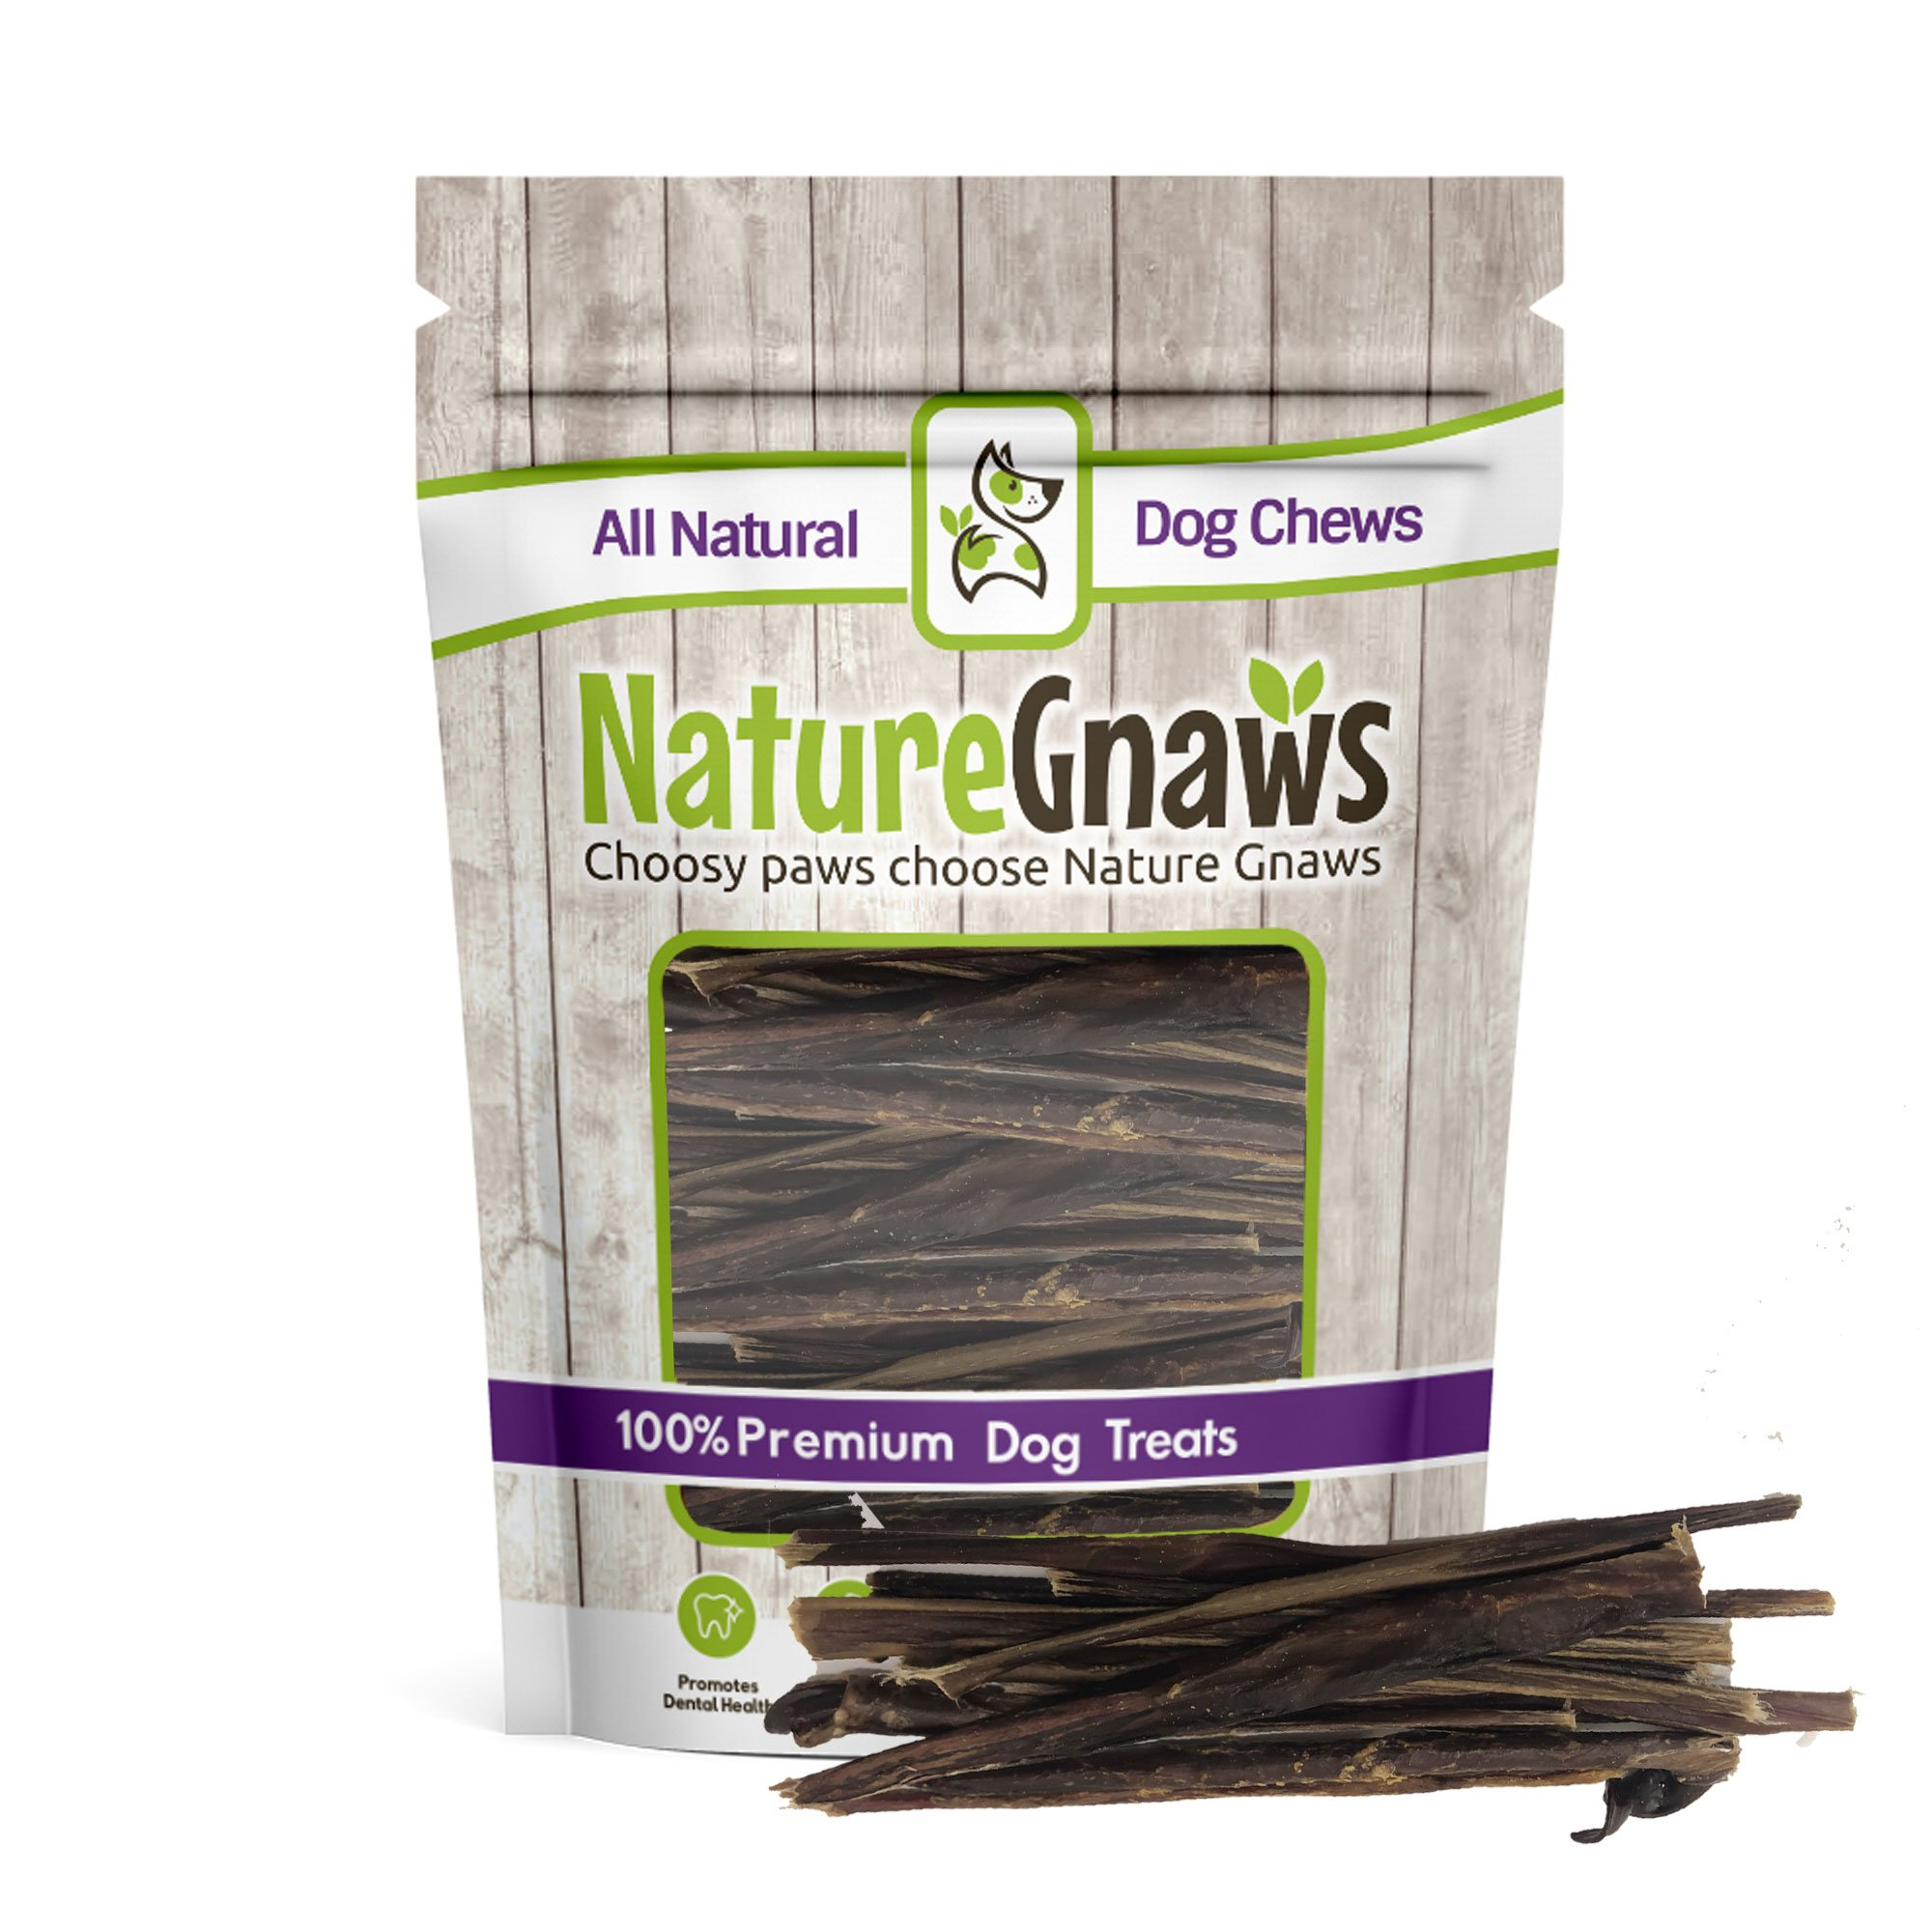 Nature Gnaws Extra Thin Pork Bully Sticks 5-6'' (50 Pack) - 100% All-Natural Premium Dog Chews - For Small Breeds & Light Chewers